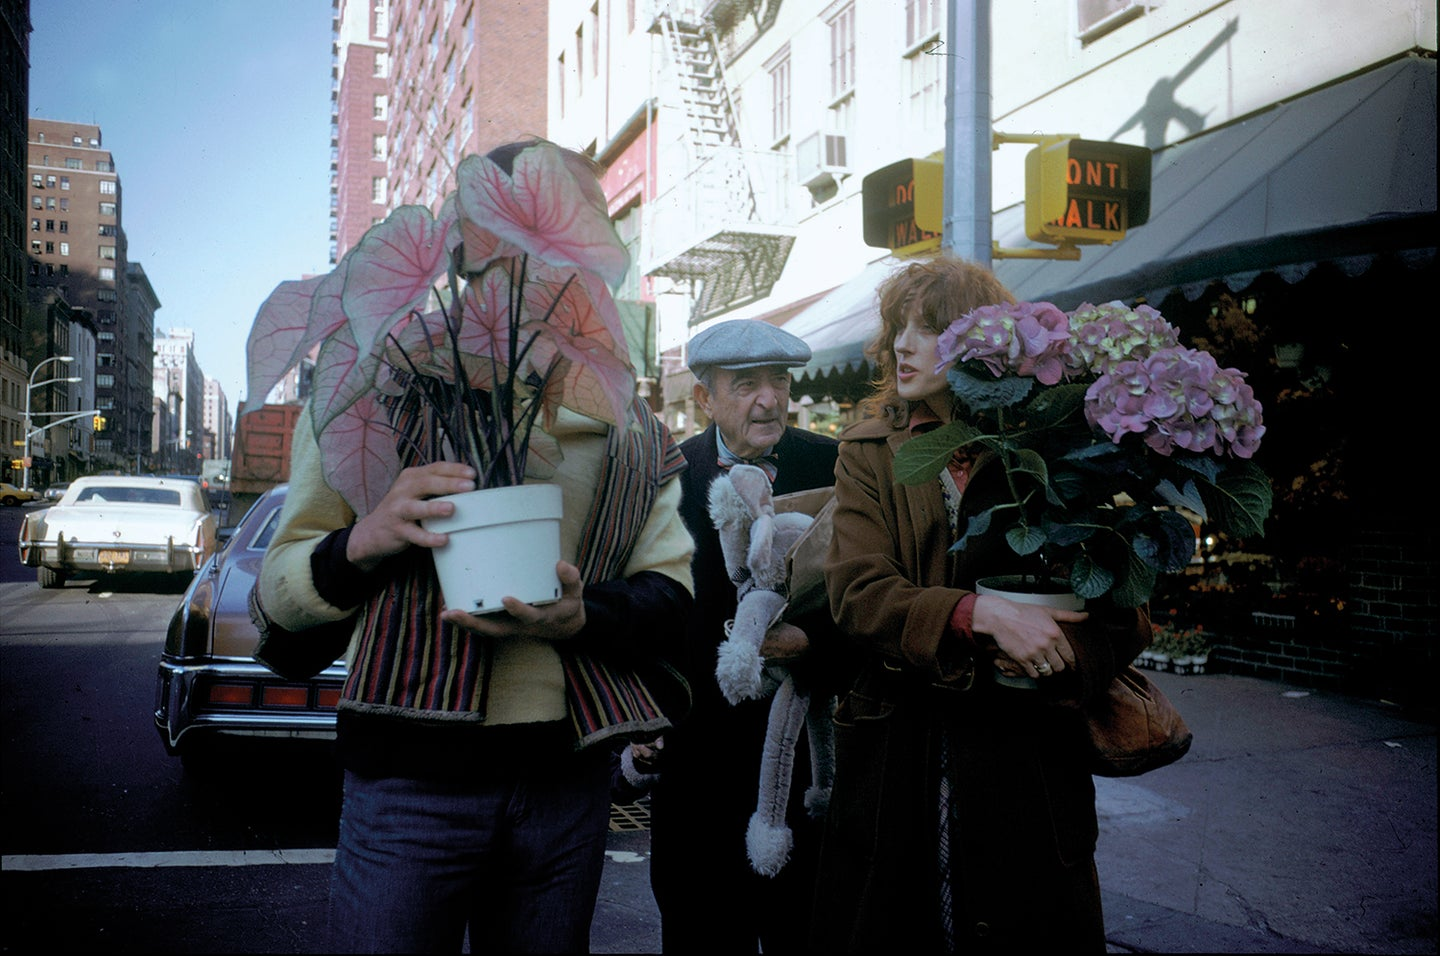 People carrying plants in New York